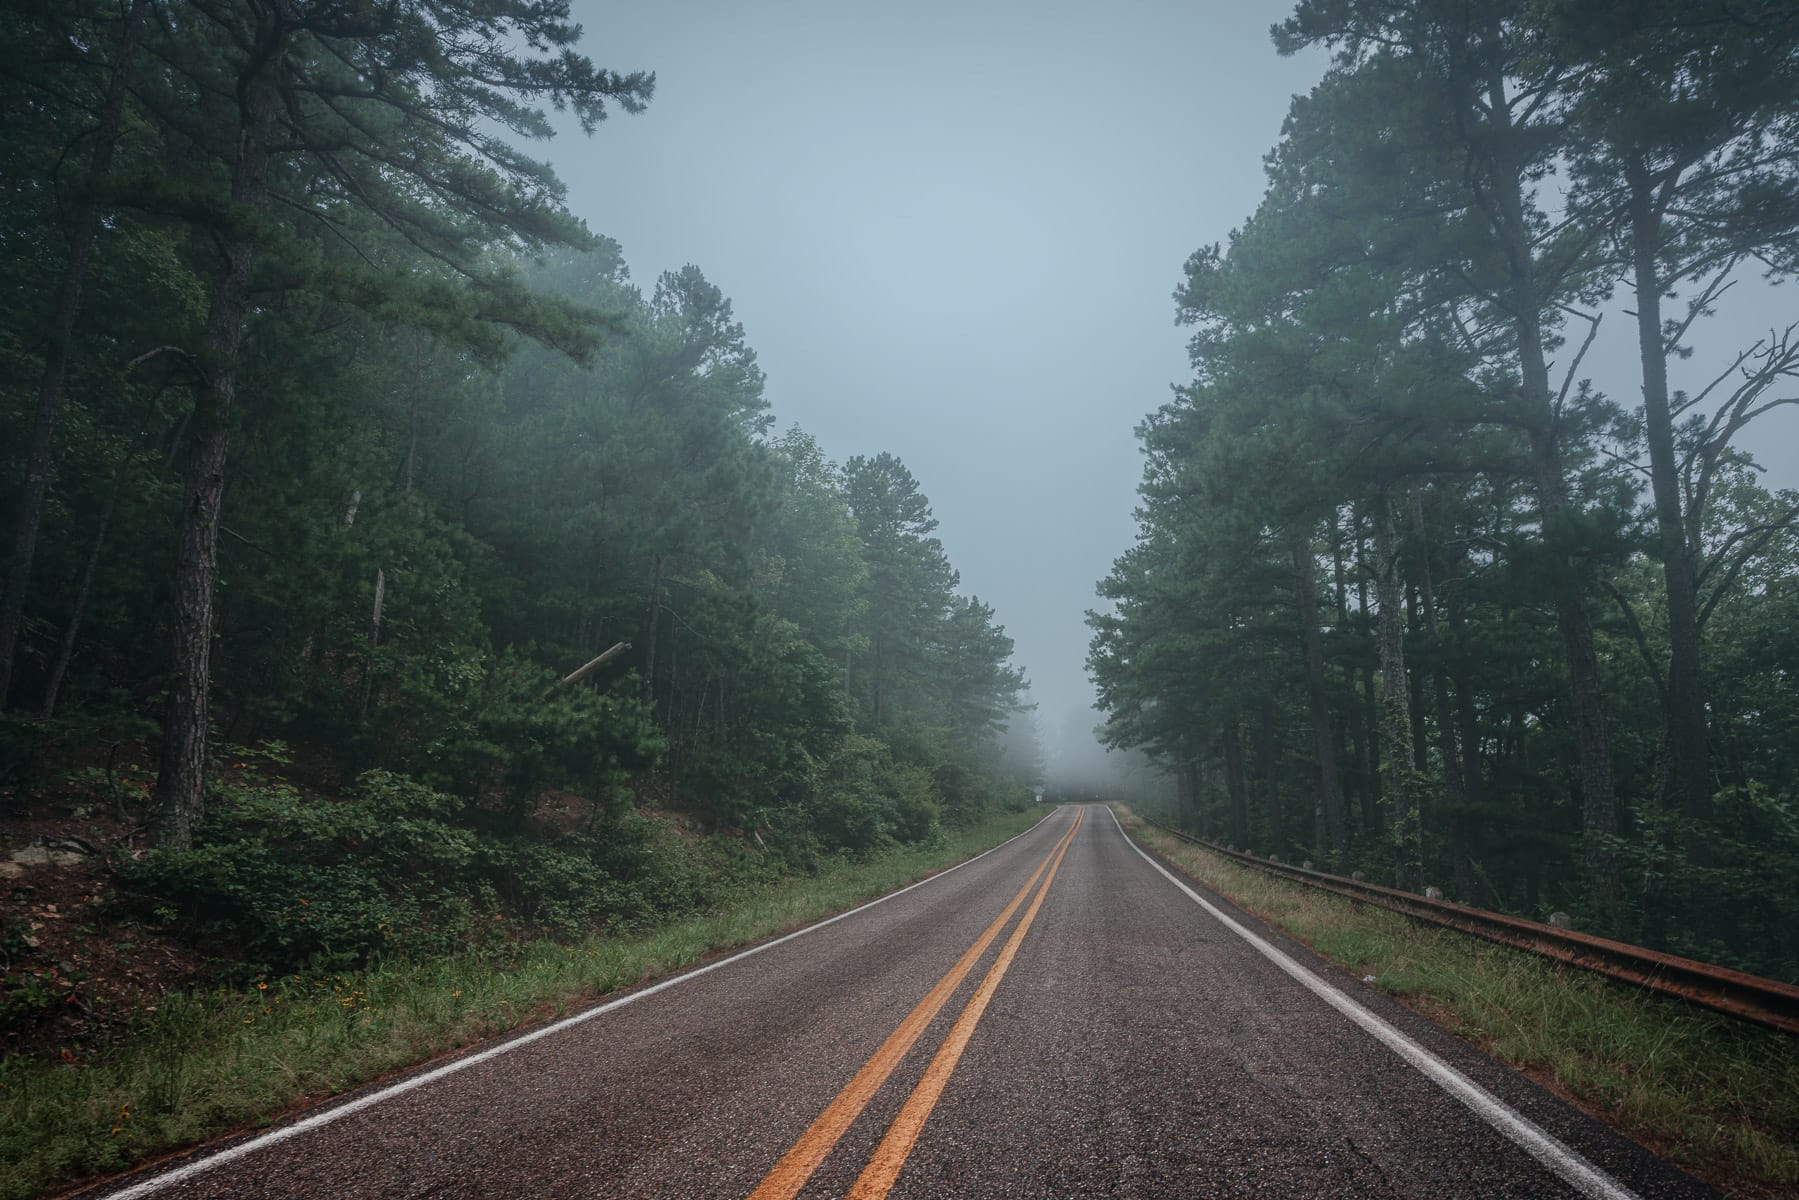 Morning fog on the Talimena National Scenic Byway near Mena, Arkansas.